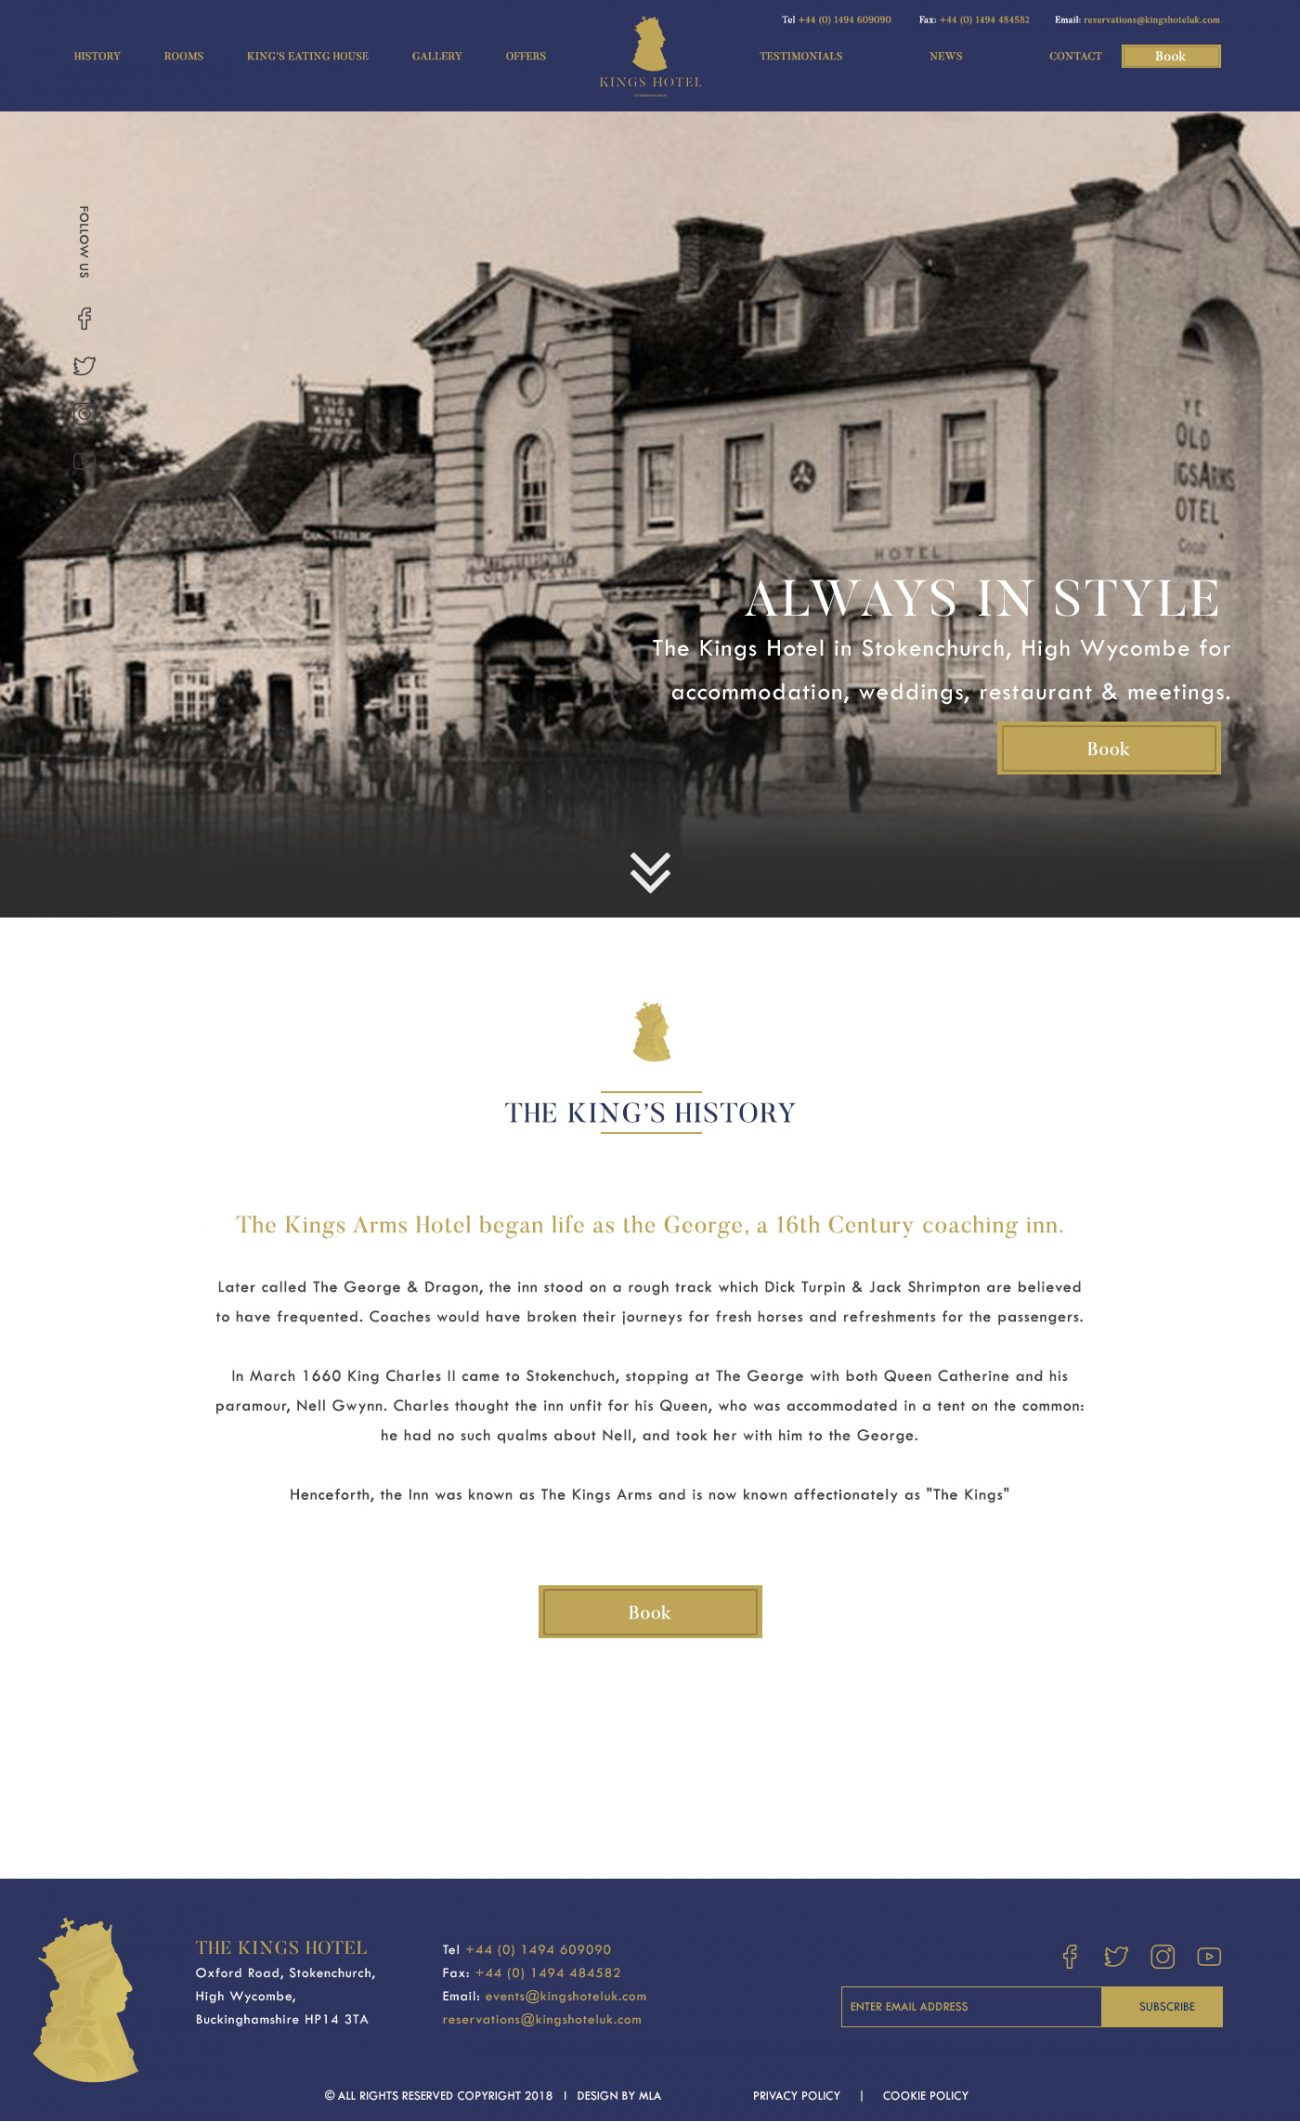 The Kings Hotel history page - Web design London- web design agency london